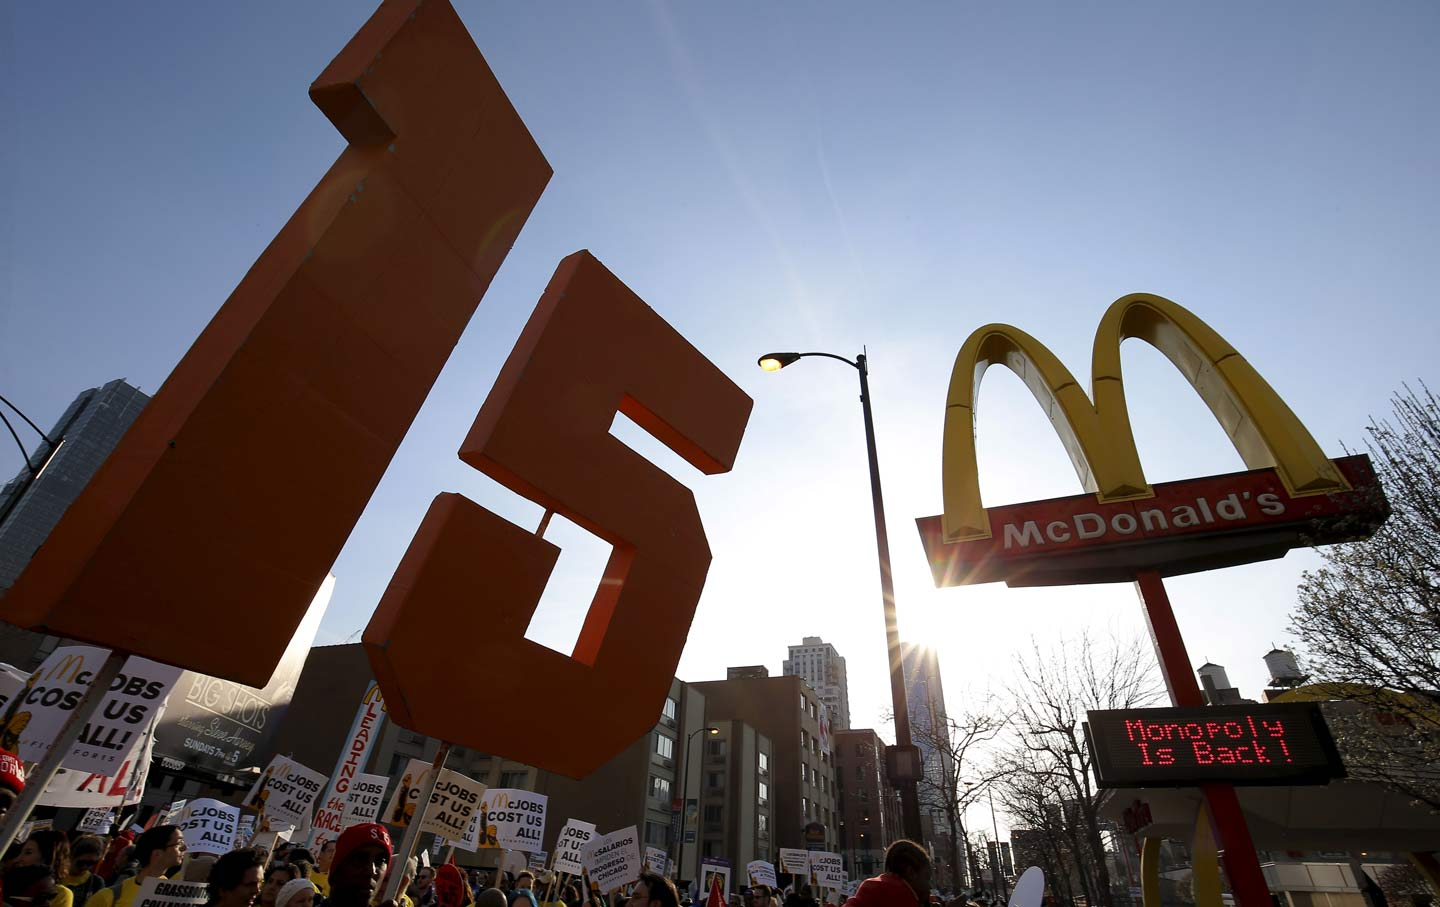 15-an-hour minimum wage protest